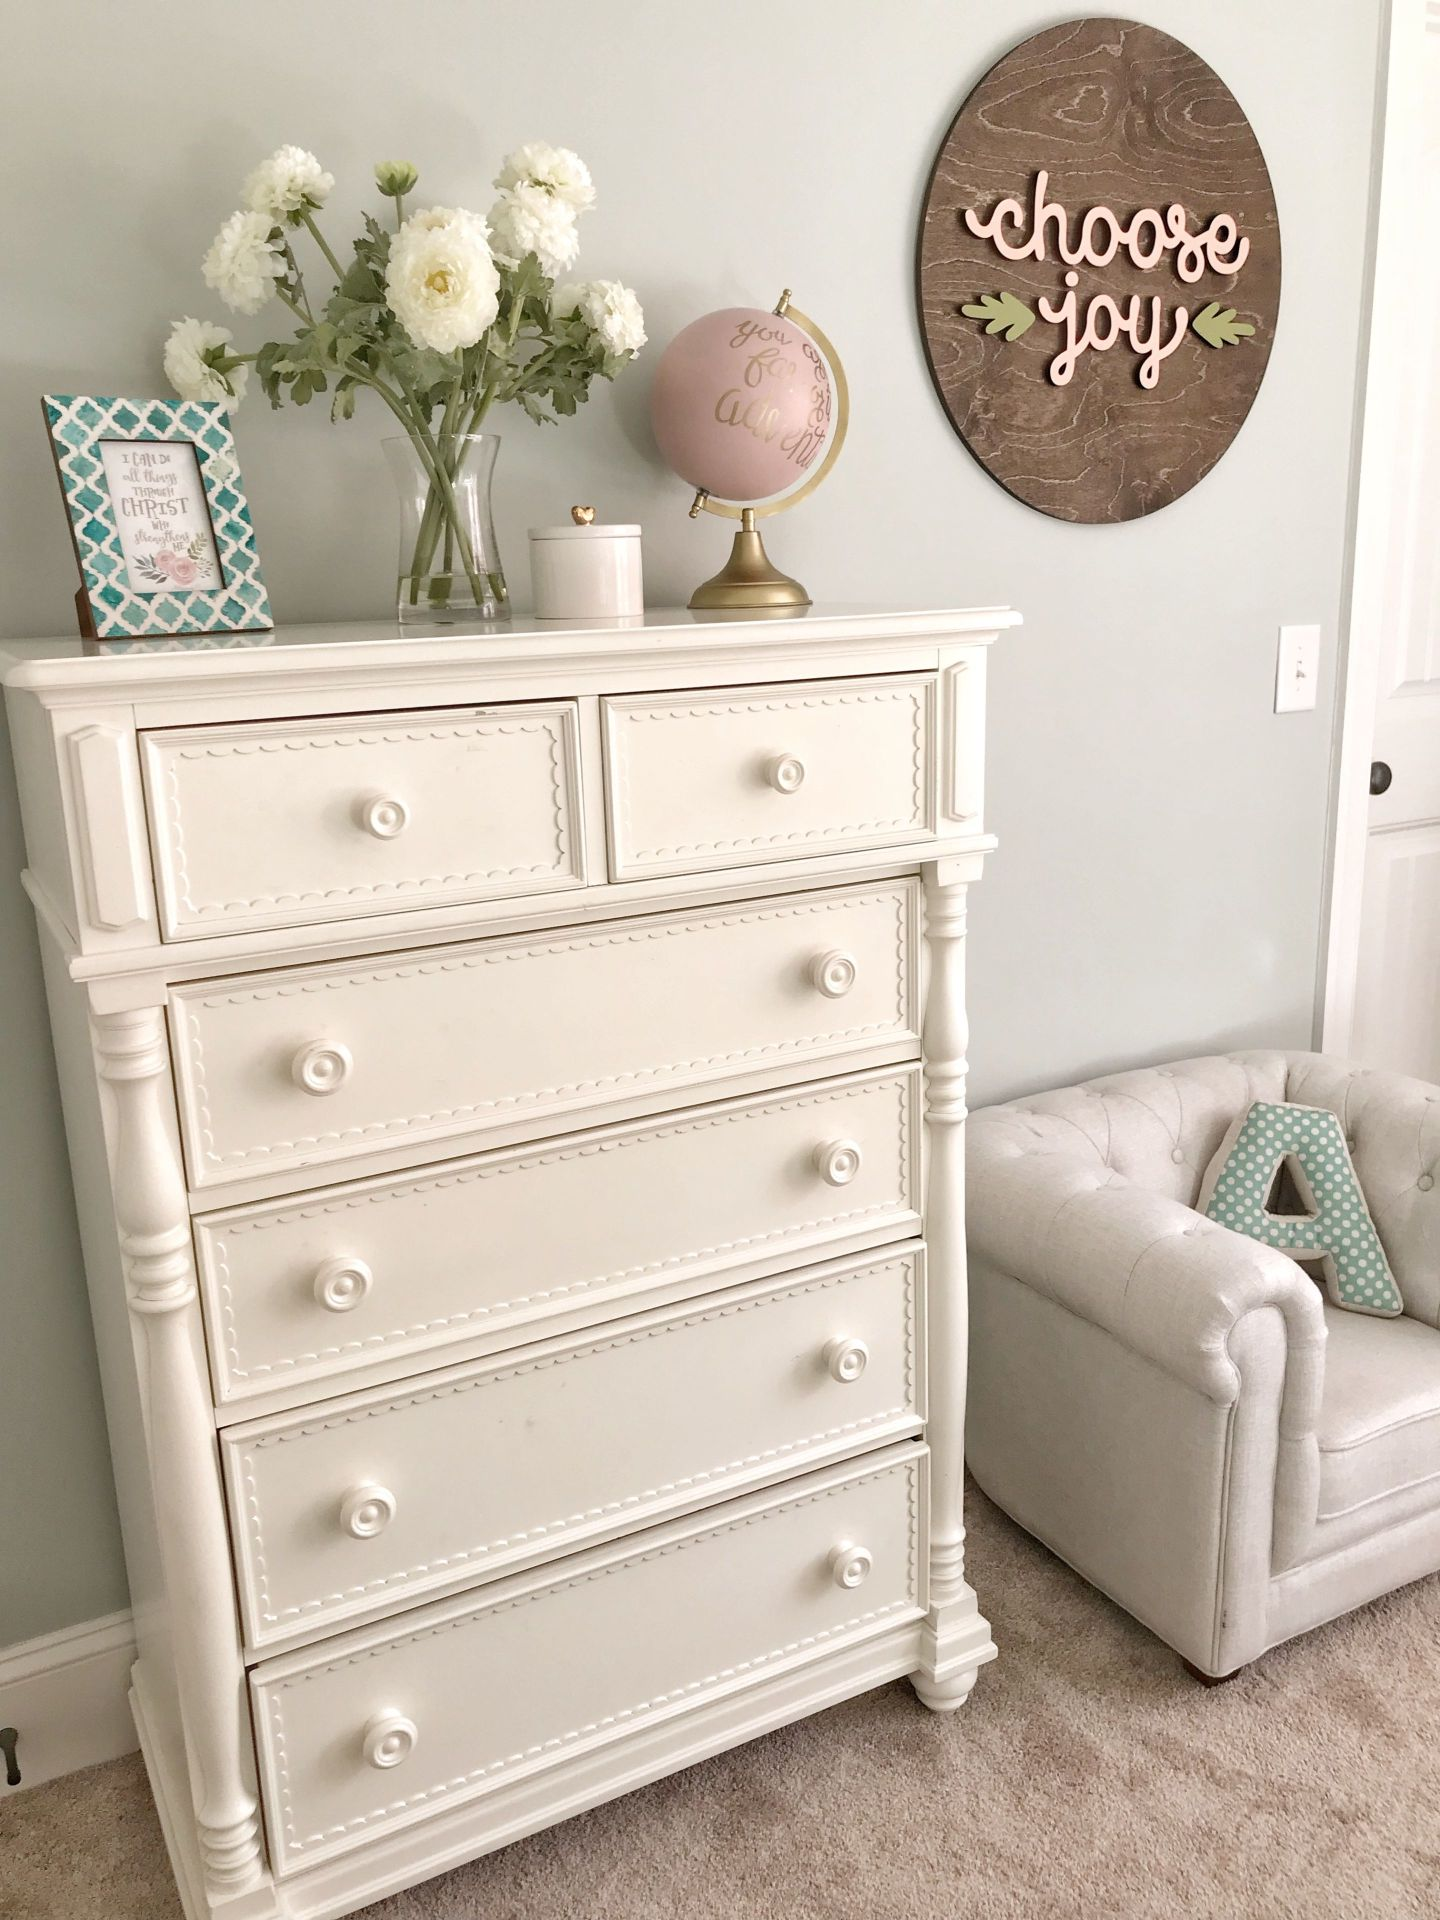 GKVFE9724-1440x1920 3 Tips on How to Decorate a Southern Girl's Room